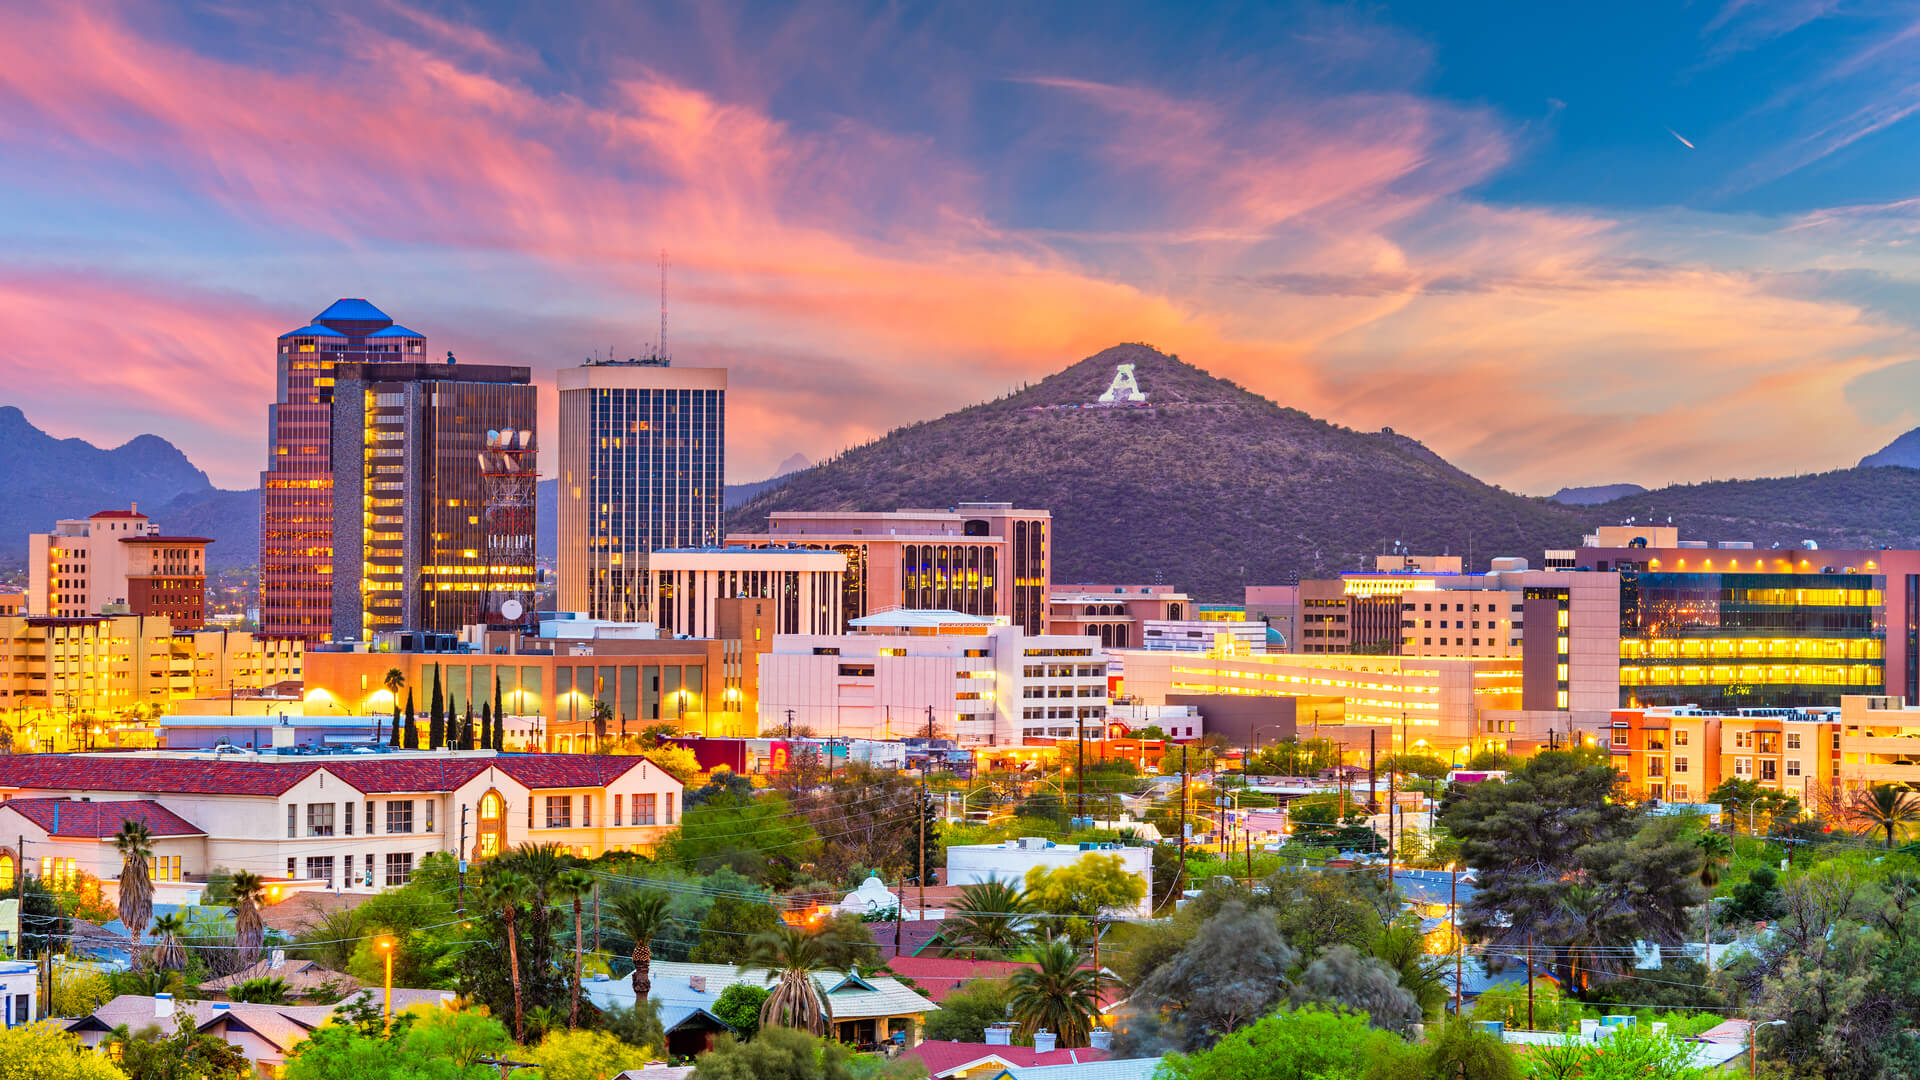 A shot of the Tucson Arizona downtown skyline with Sentinel Peak at dusk